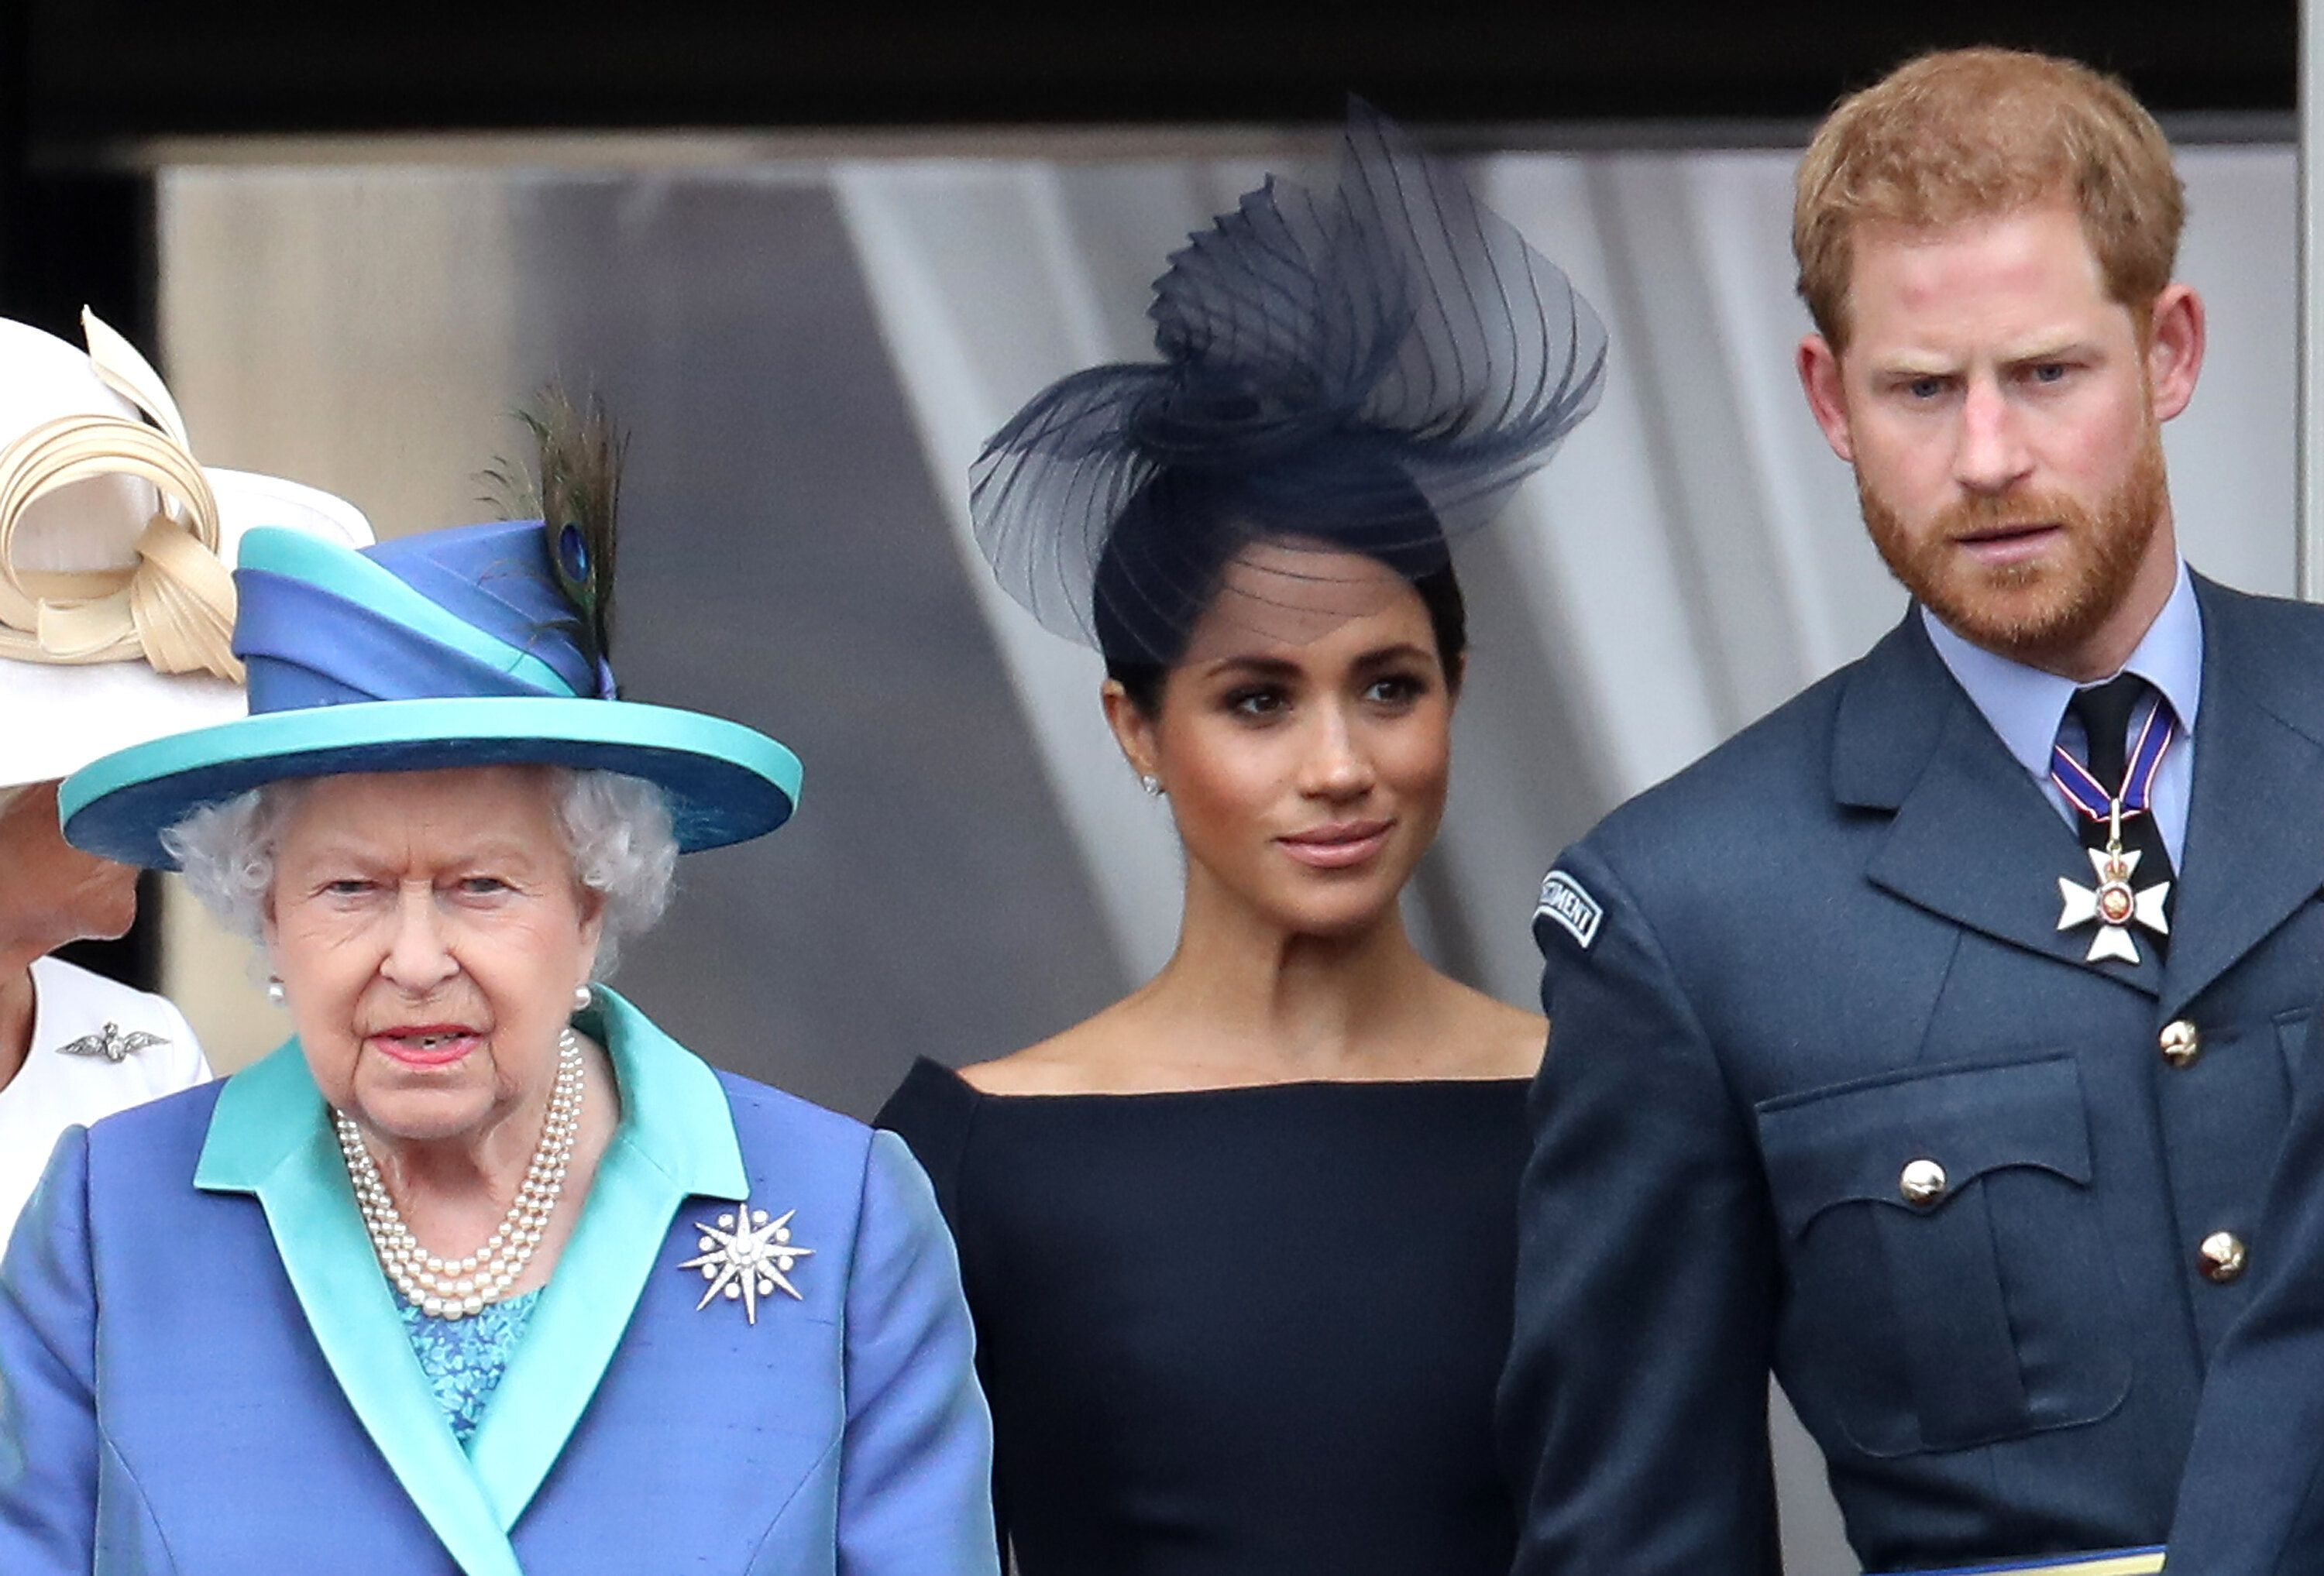 Queen Elizabeth and the Duke and Duchess of Sussex stand on the balcony of Buckingham Palace on July 10, 2018.